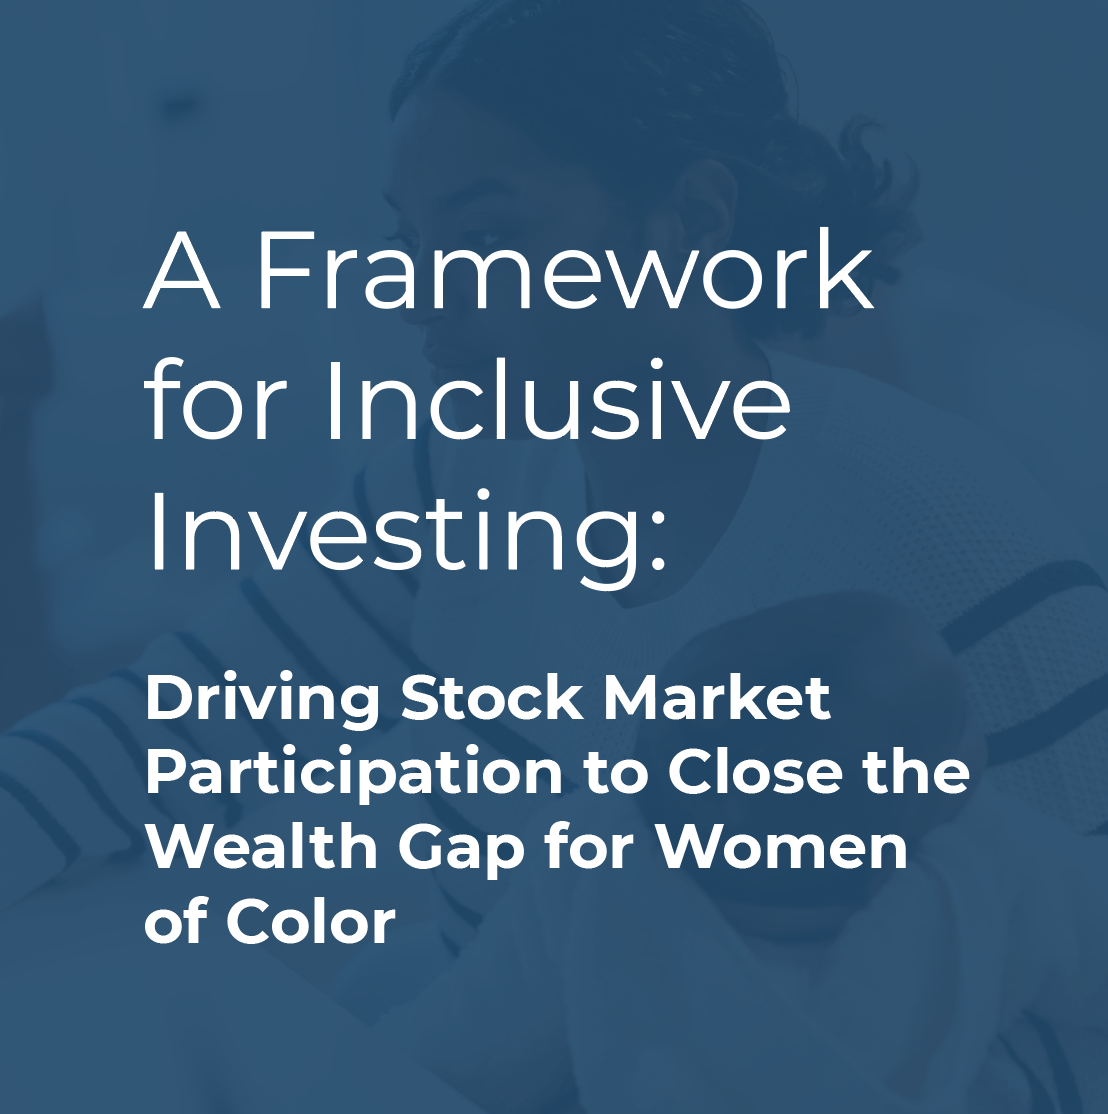 A Framework for Inclusive Investing: Driving Stock Market Participation to Close the Wealth Gap for Women of Color